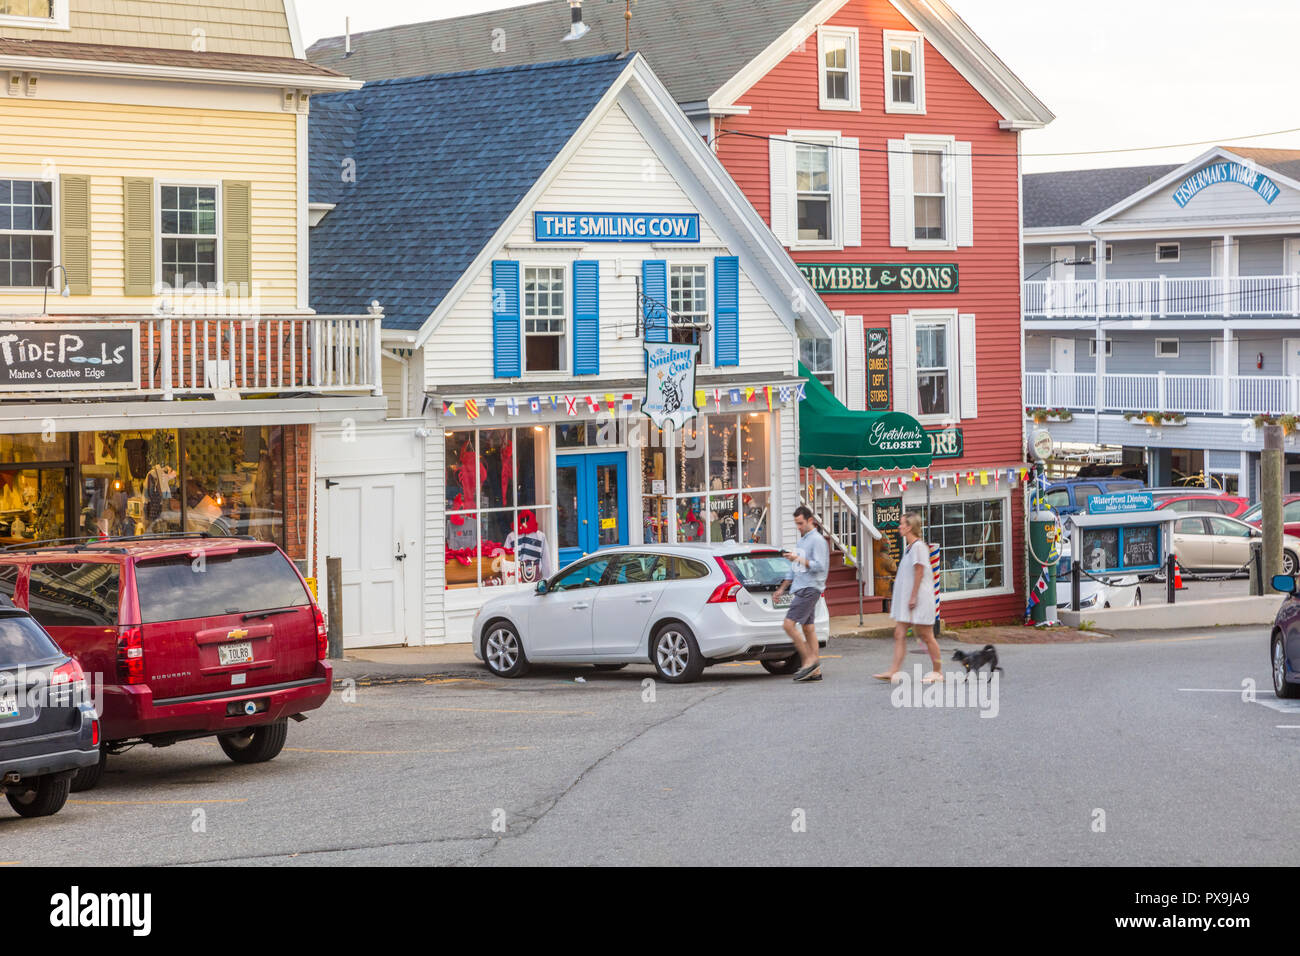 Downtown Business Center Of Boothbay Harbor Maine In The United States Stock Photo Alamy